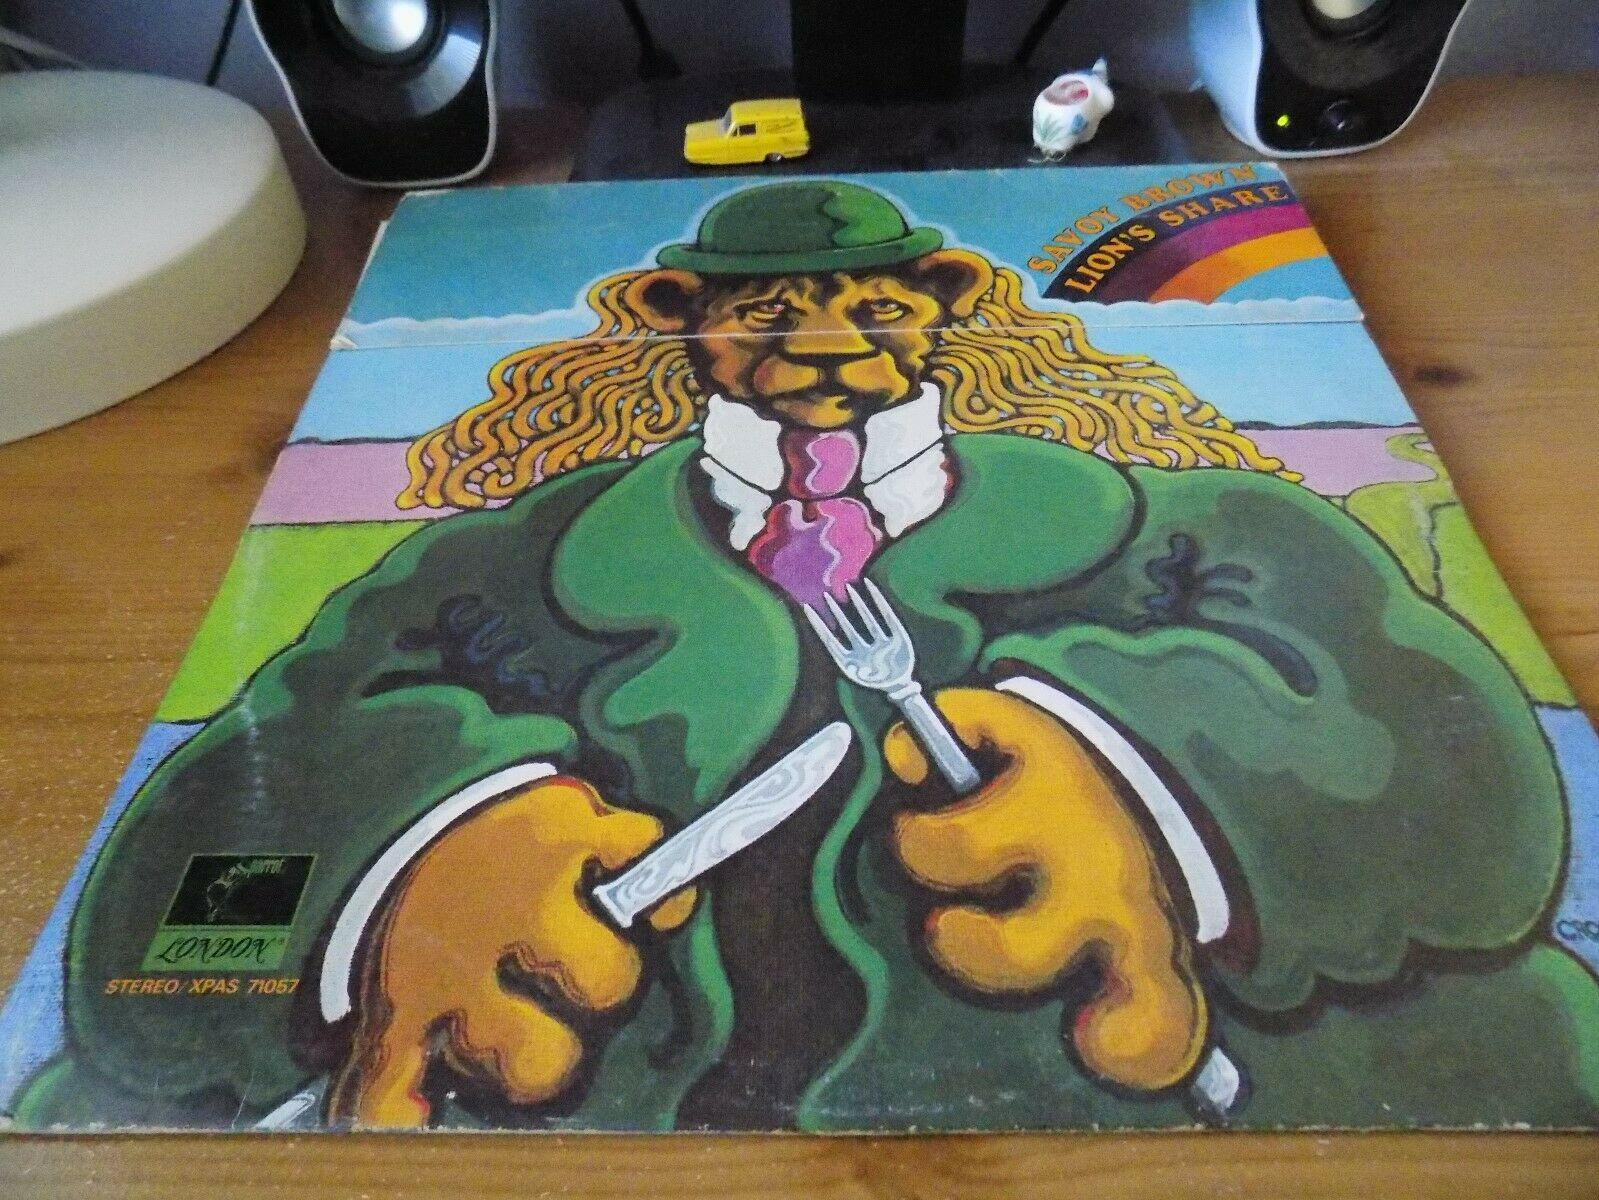 SAVOY BROWN-LION'S SHARE RARE 1970s BLUES ROCK VINYL LP